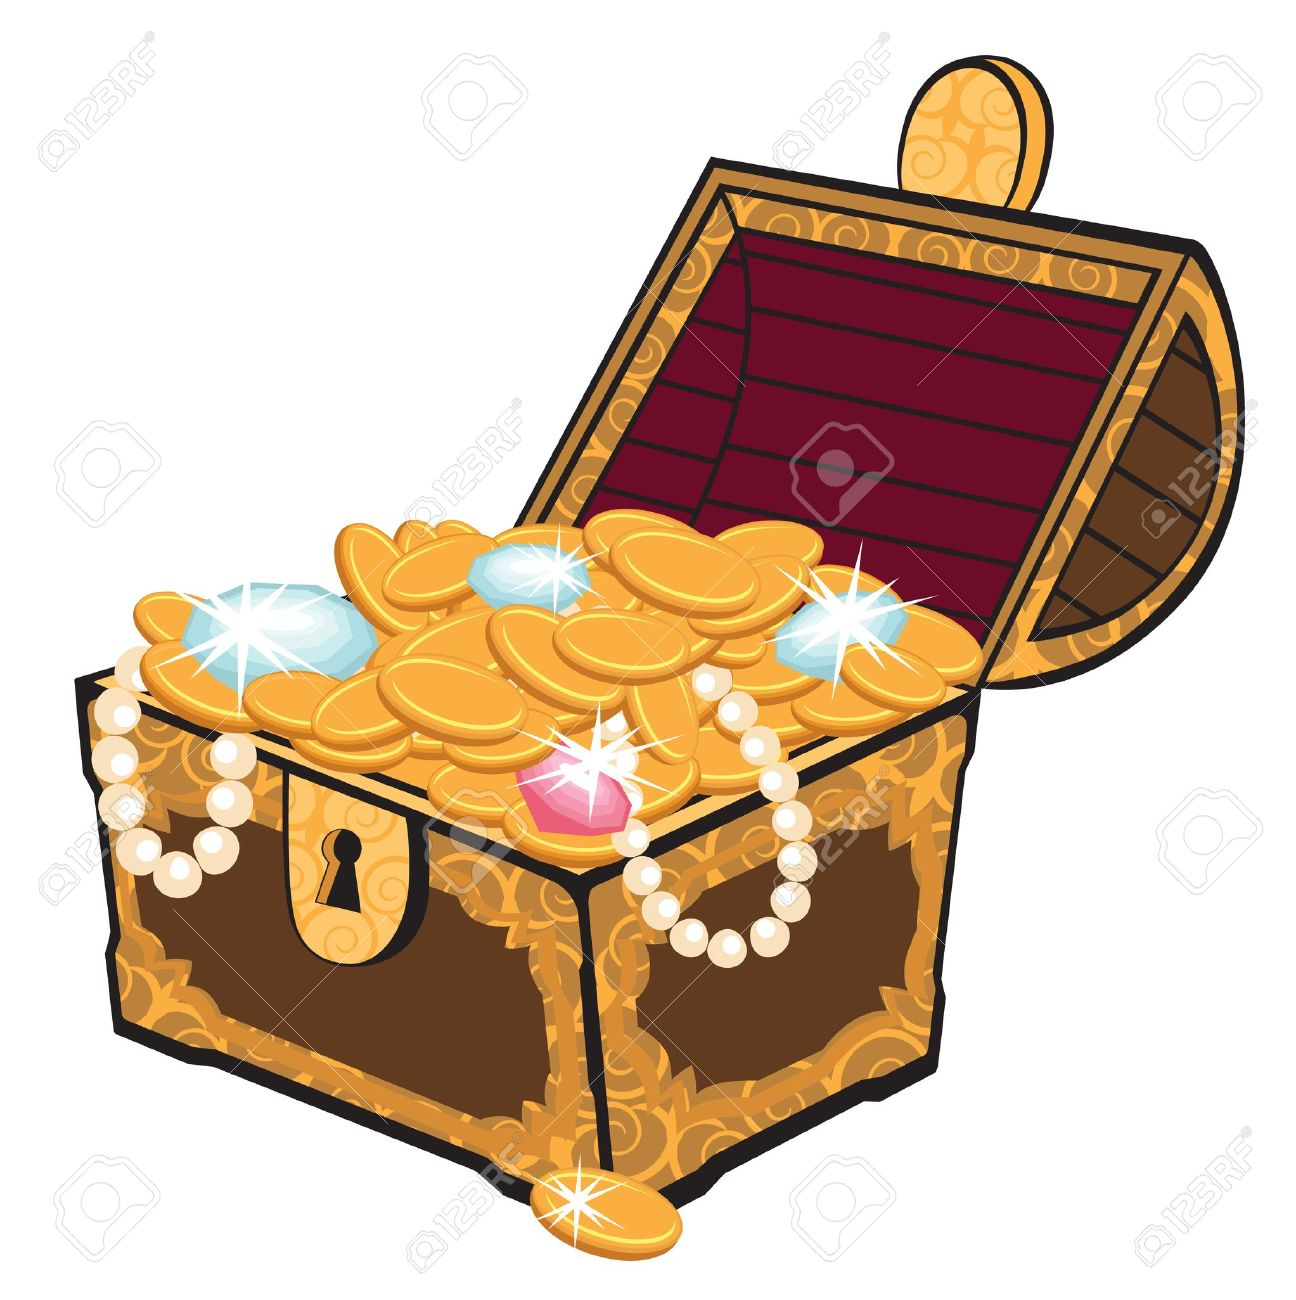 treasure chest royalty free cliparts vectors and stock